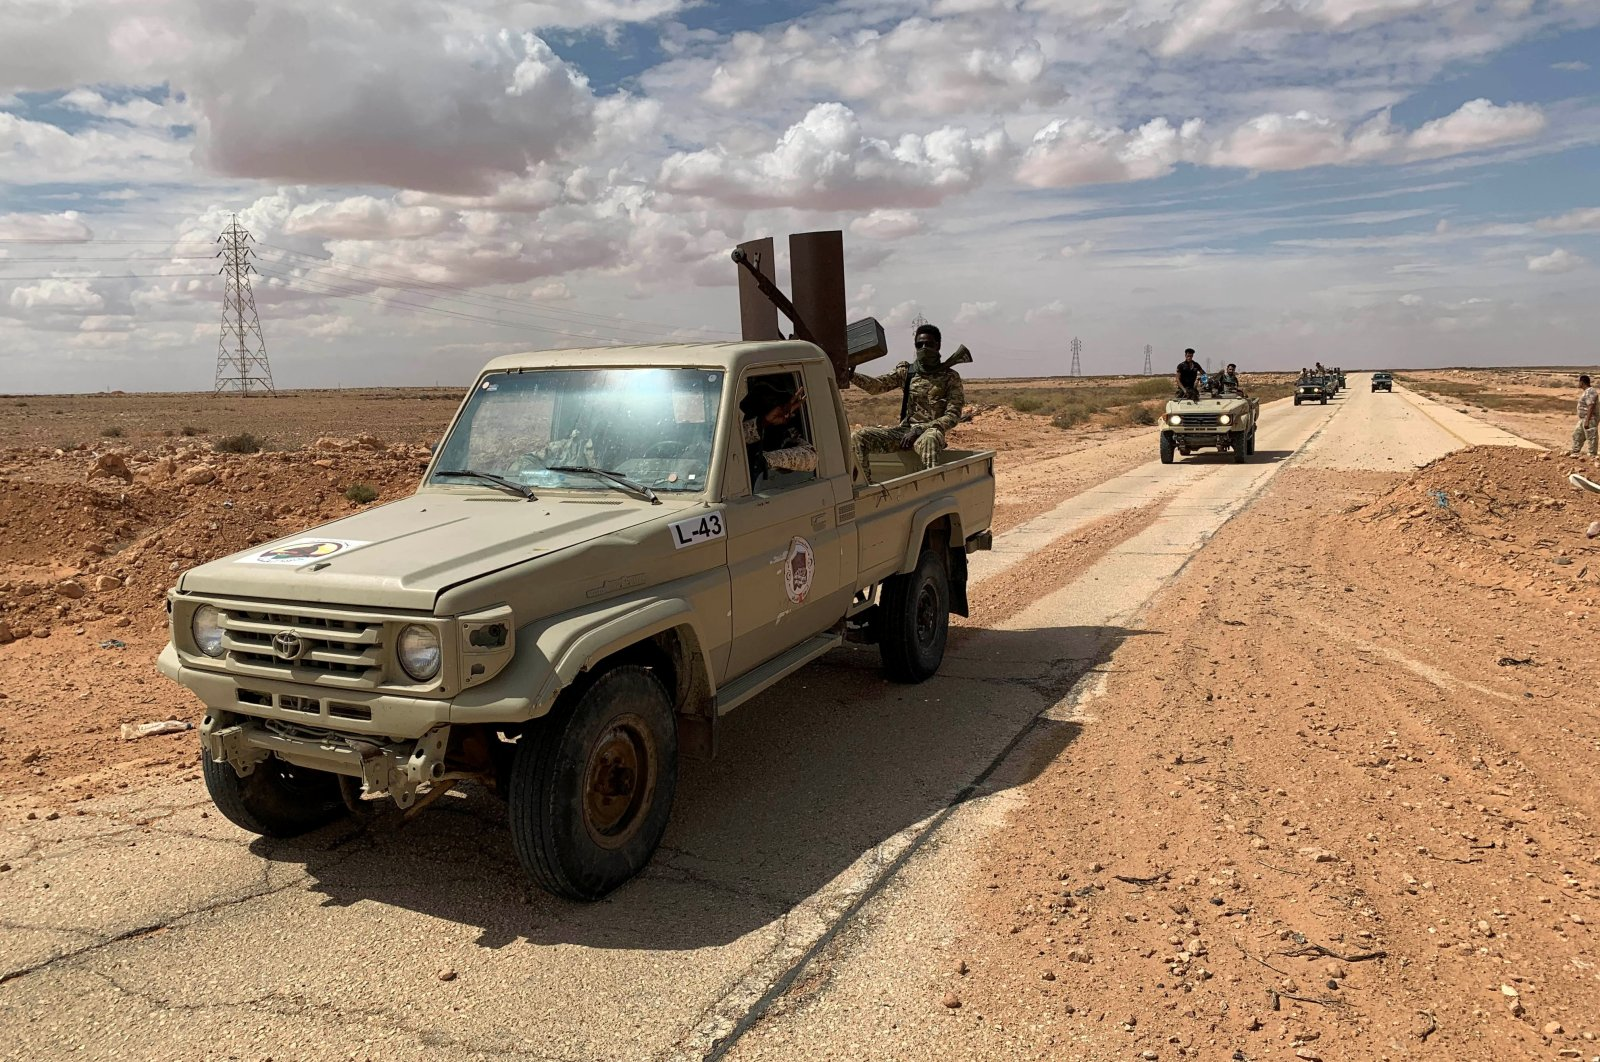 Troops loyal to Libya's internationally recognized government patrol the area in Zamzam, near Abu Qareen, Libya, Sept. 15, 2020. (REUTERS Photo)